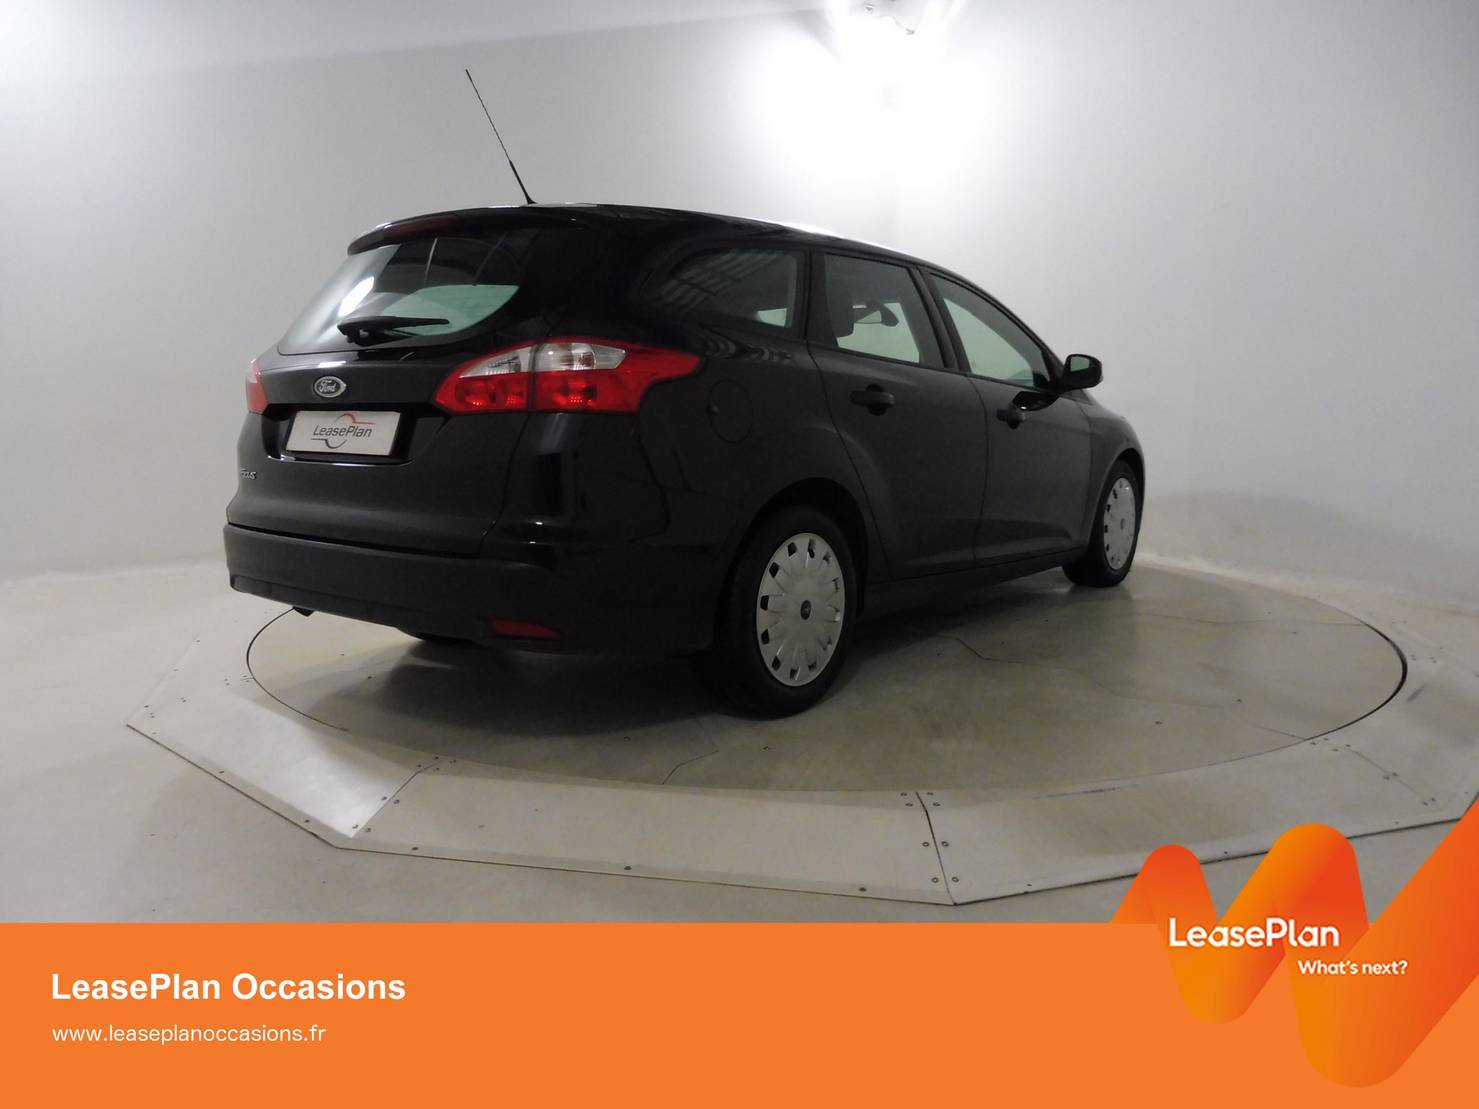 Ford Focus 1.6 TDCi 105 ECOnetic Technology 88g, Business Nav detail2